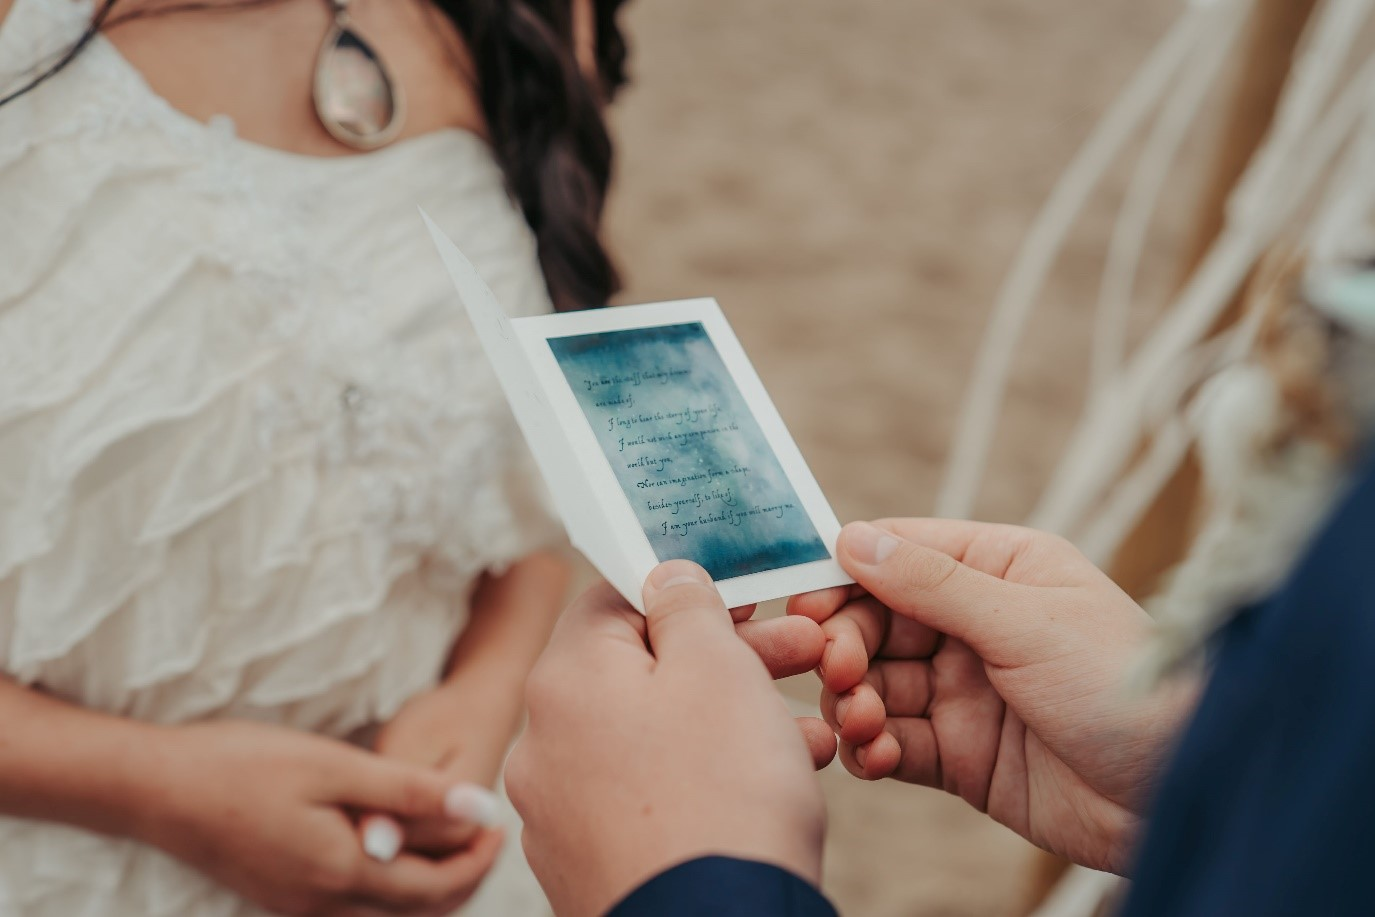 beach elopement - beach wedding - eco friendly wedding -tempest themed wedding - unique wedding vows